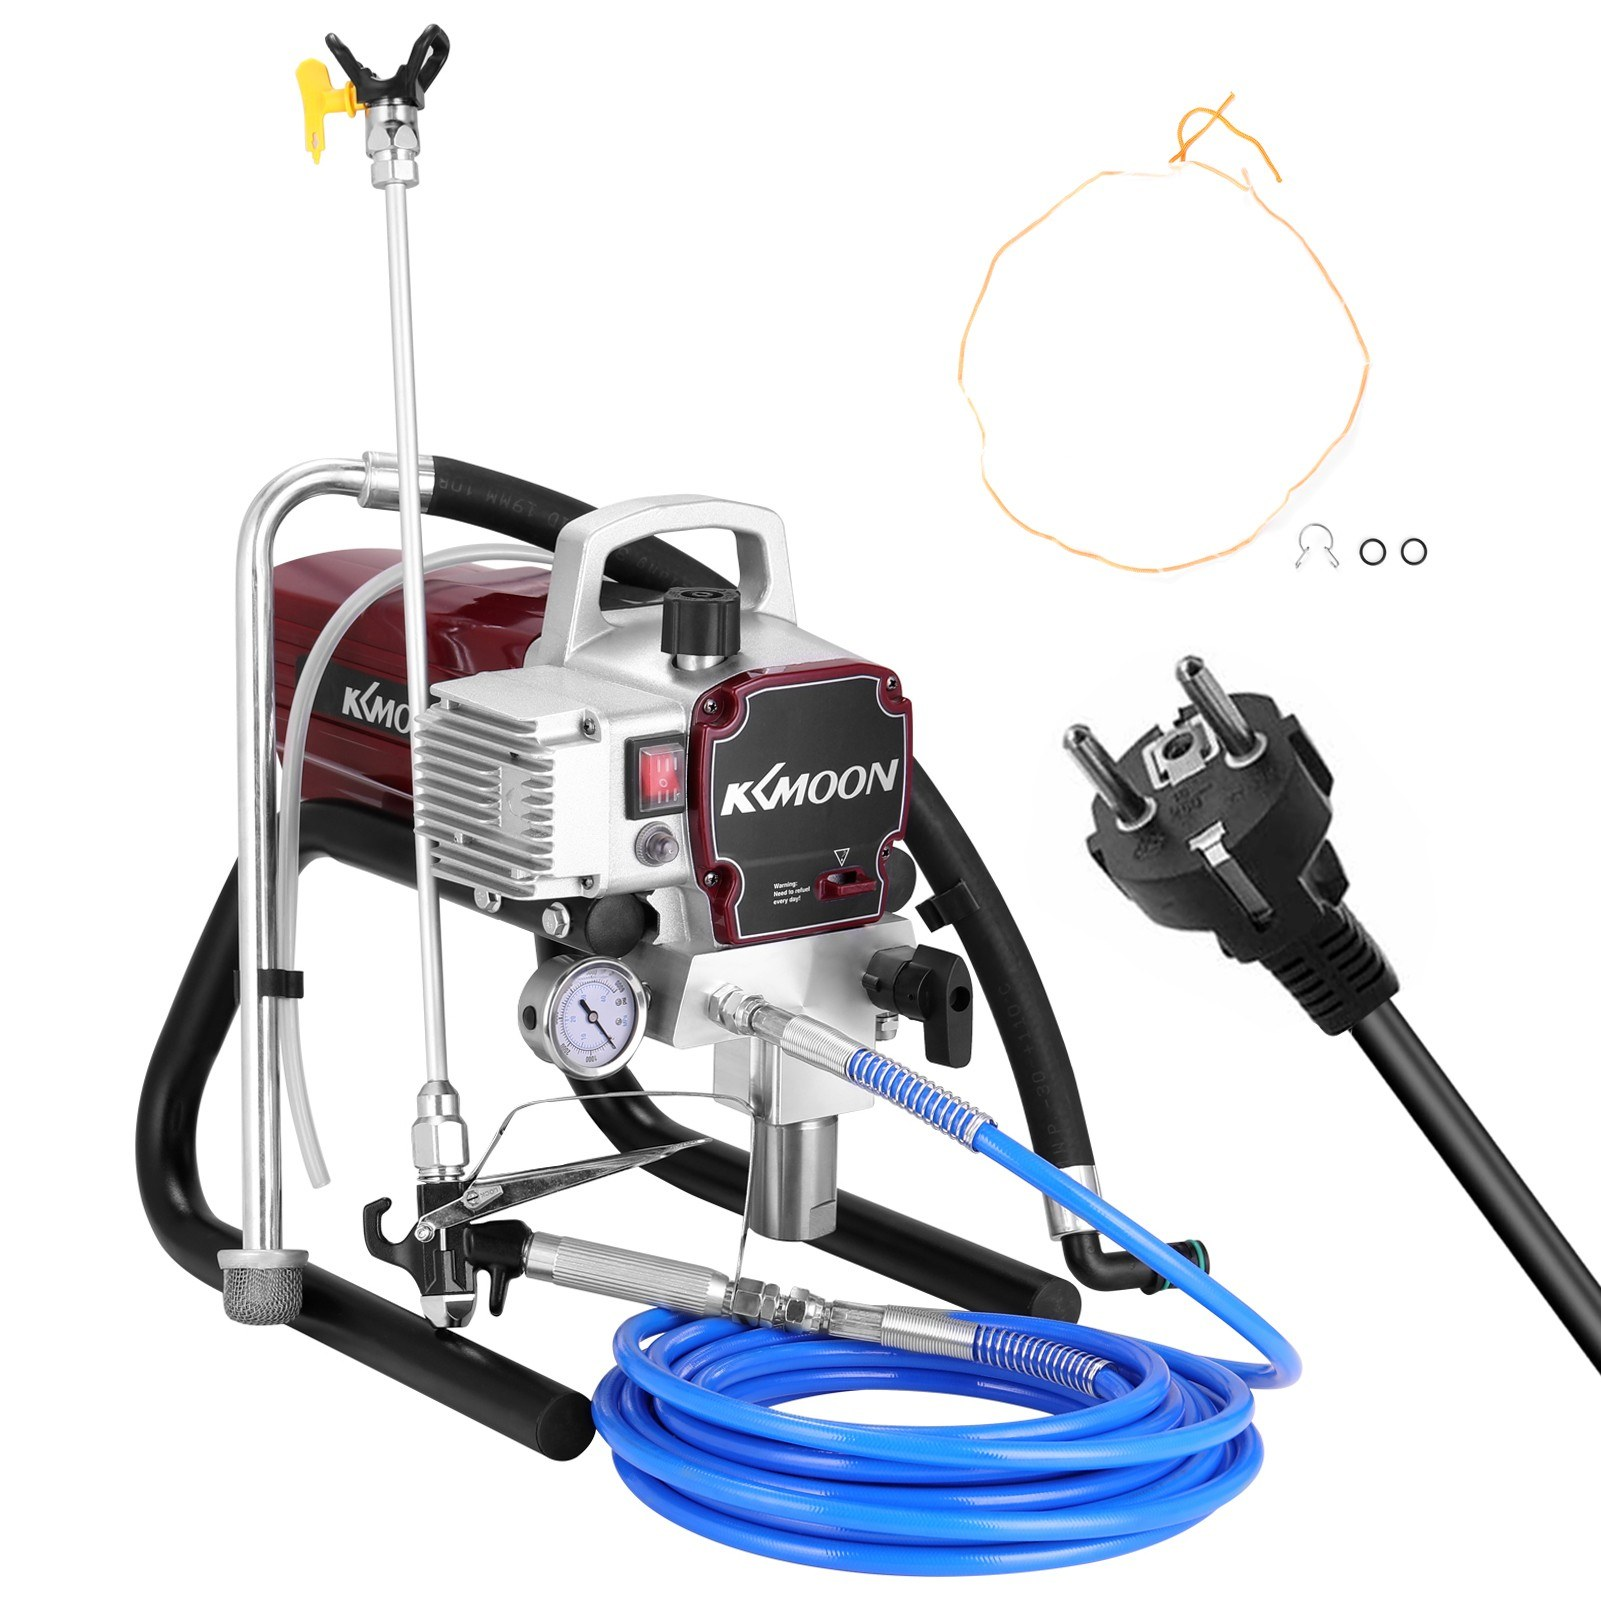 Cafago - 65% OFF KKmoon Professional High-pressure Airless Spraying Machine Electric Paint Sprayer Internal-feed Painting Tool,free shipping+$252.34